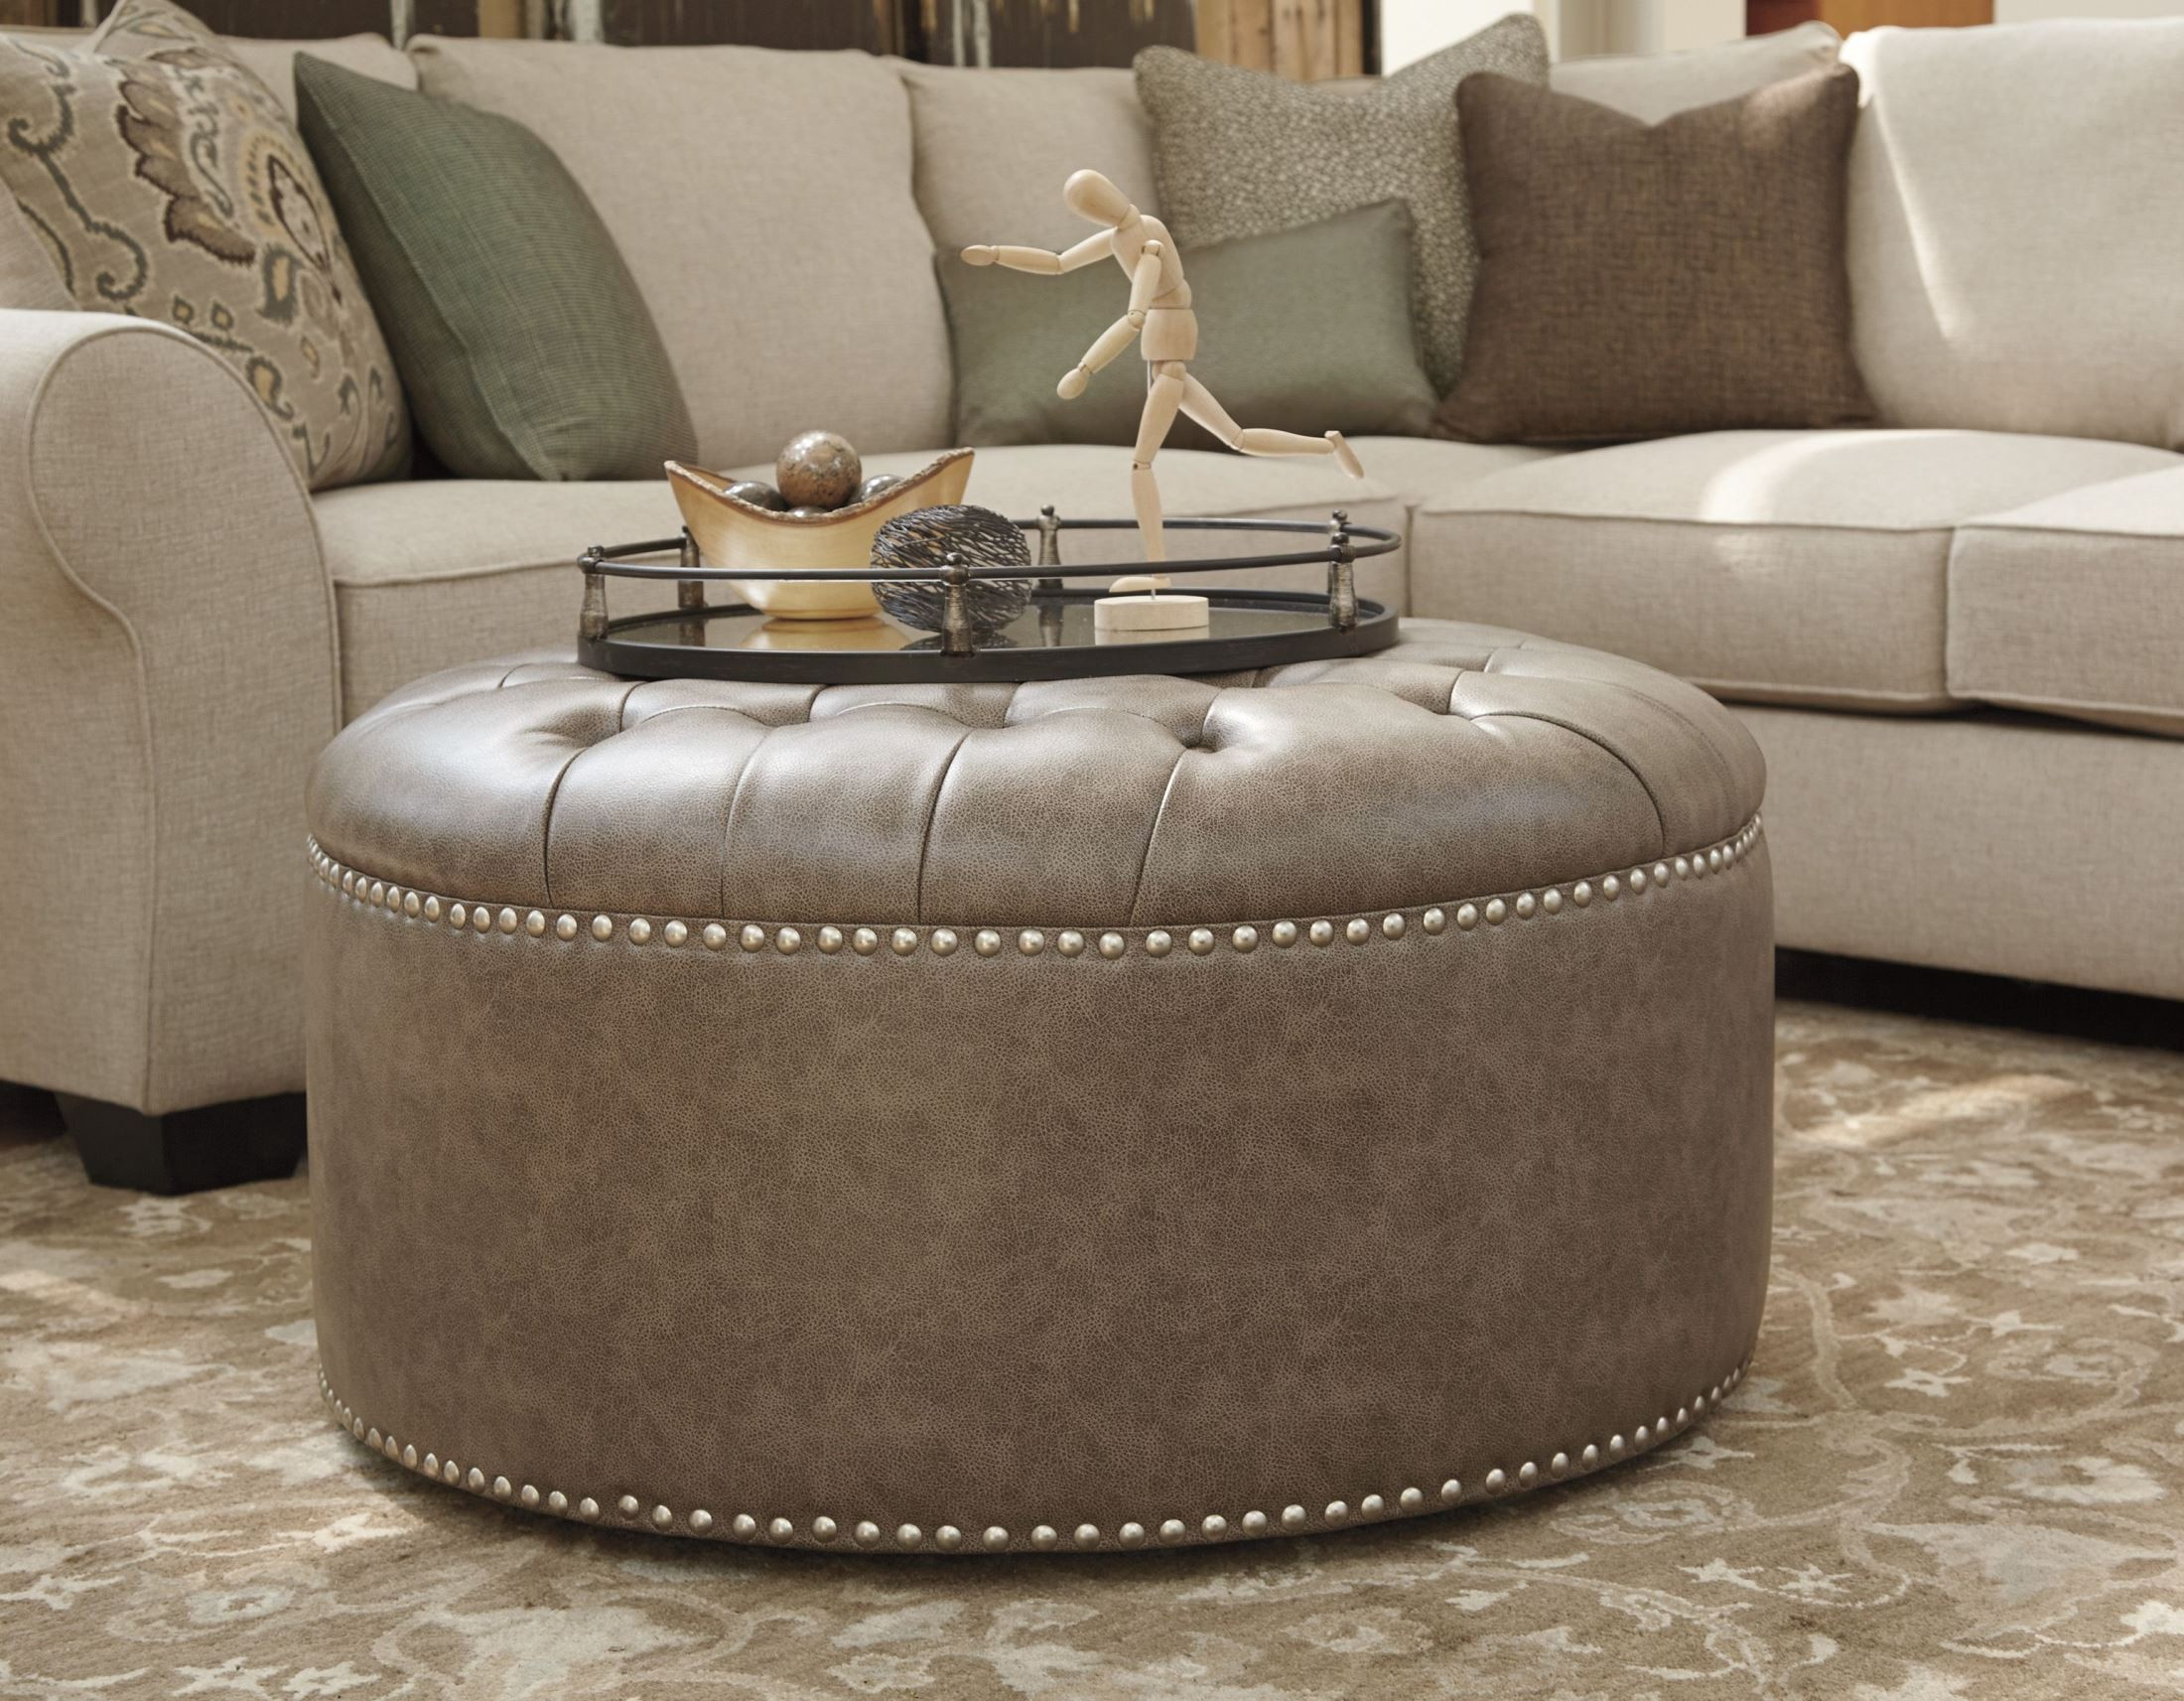 Wilcot Gray Oversized Accent Ottoman From Ashley 2870108 Coleman Furniture